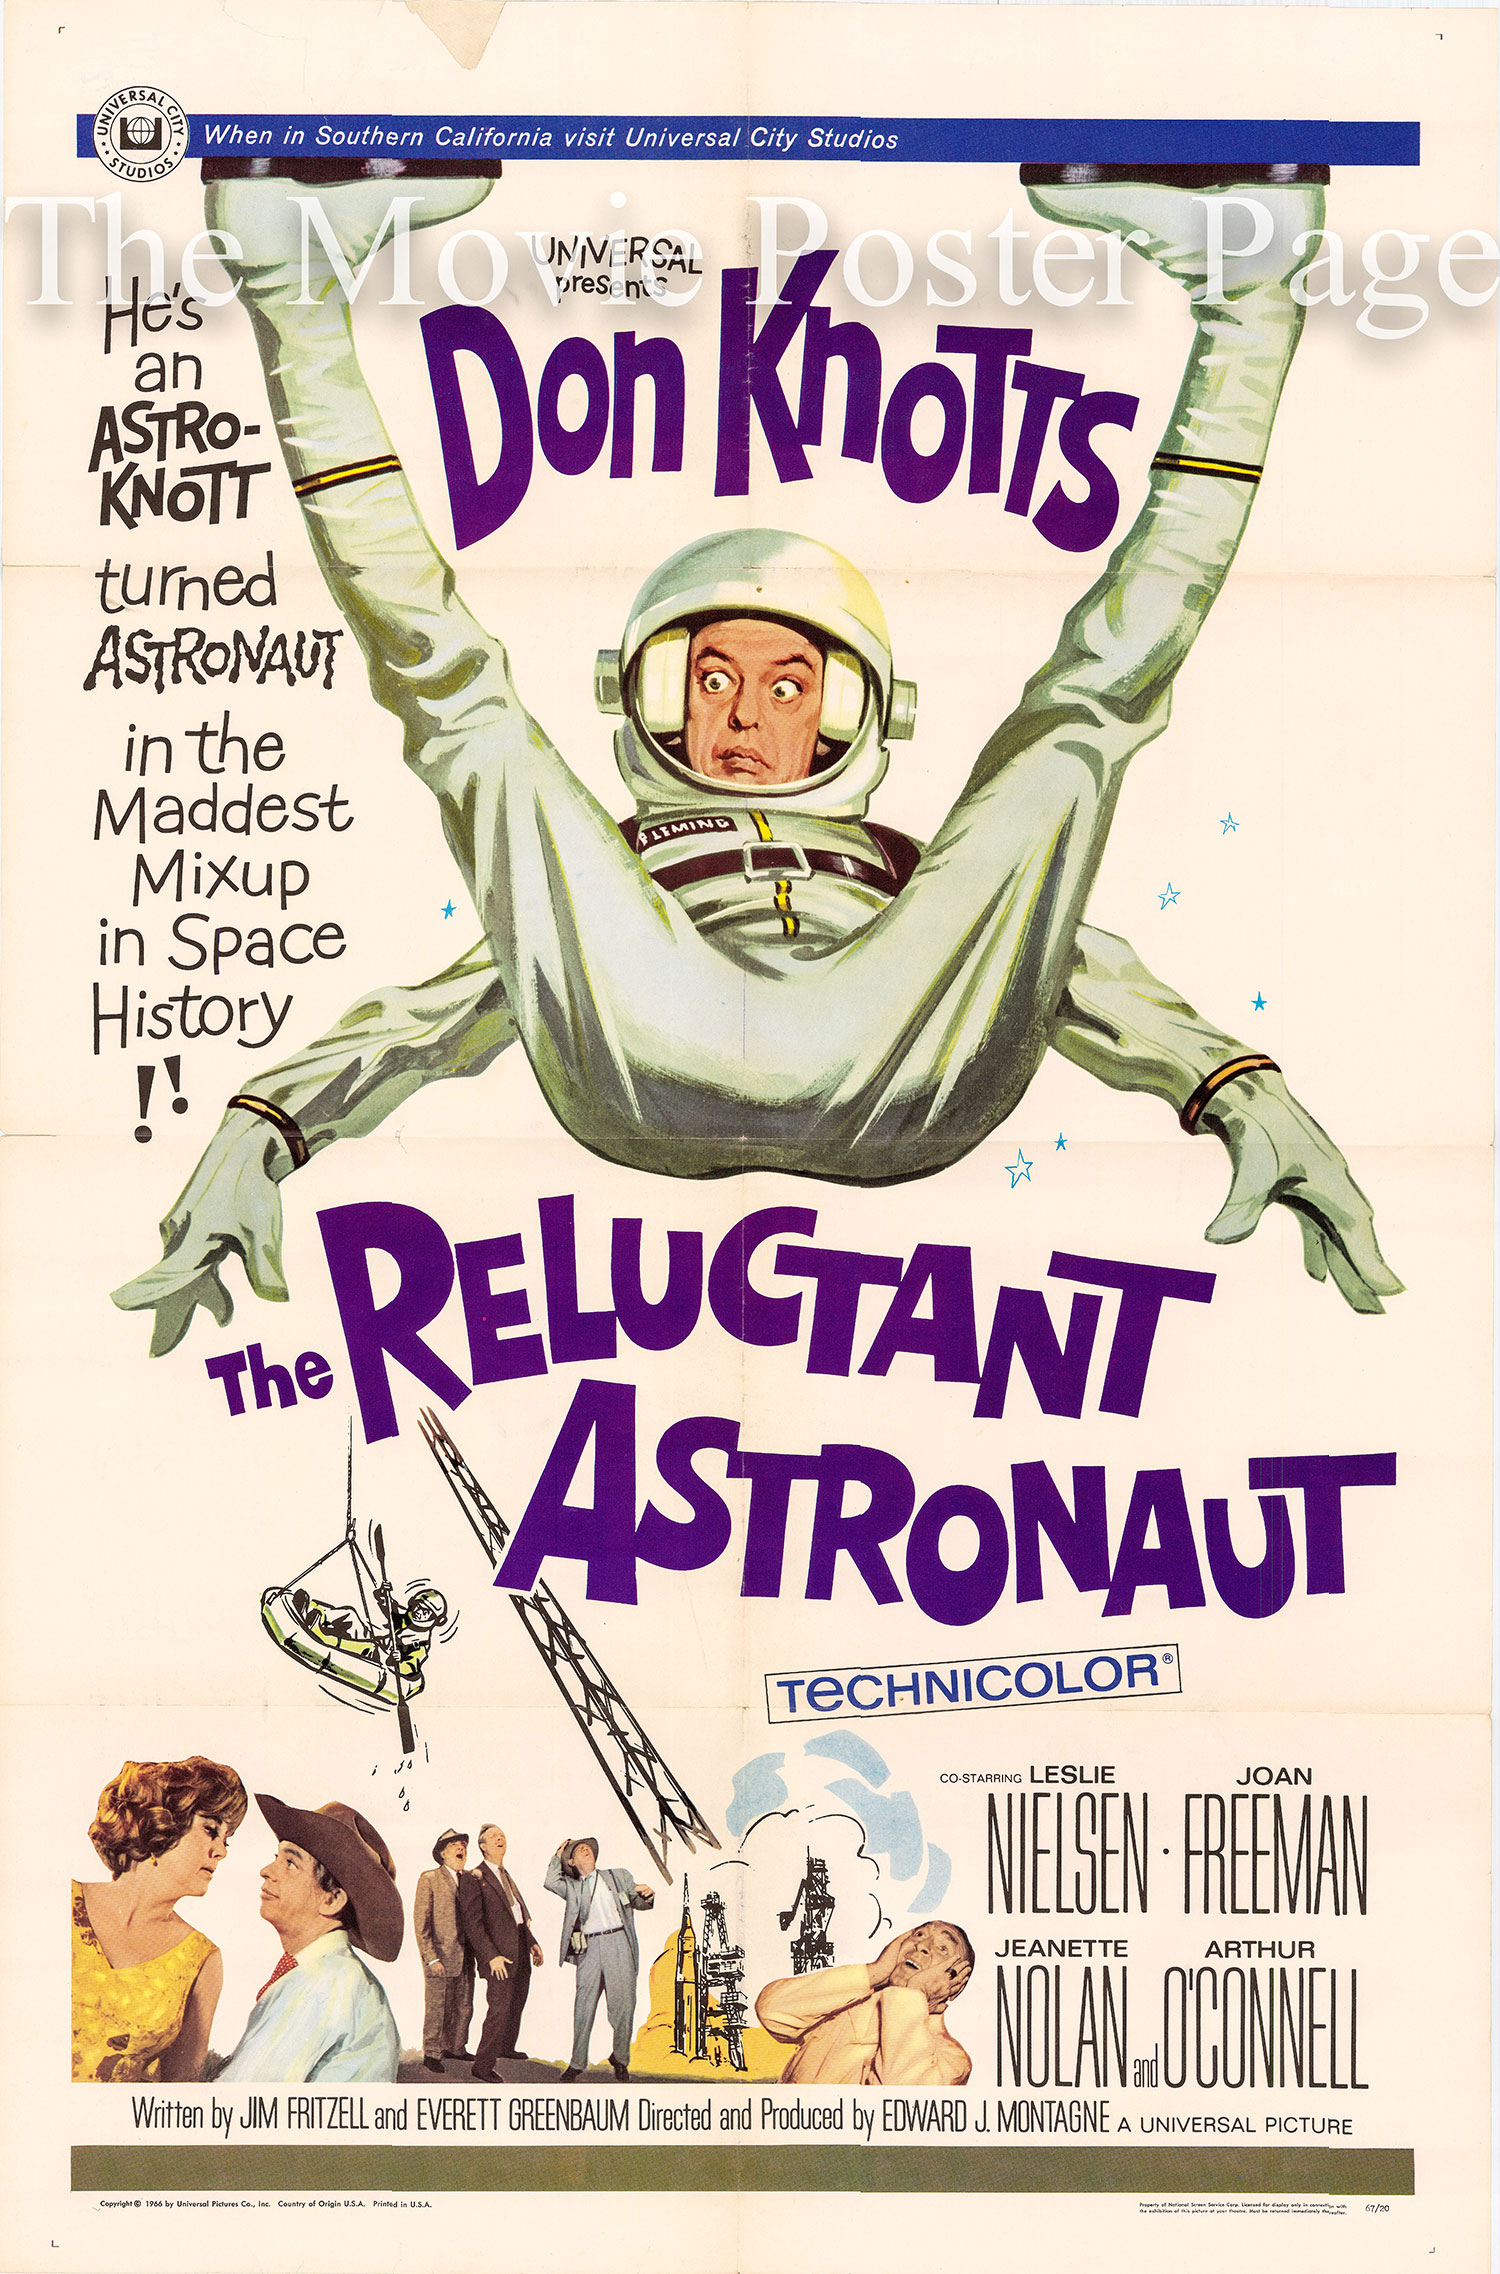 Pictured is a US one-sheet promotional poster for the 1967 Edward Montagne film The Reluctant Astronatut starring Don Knotts.